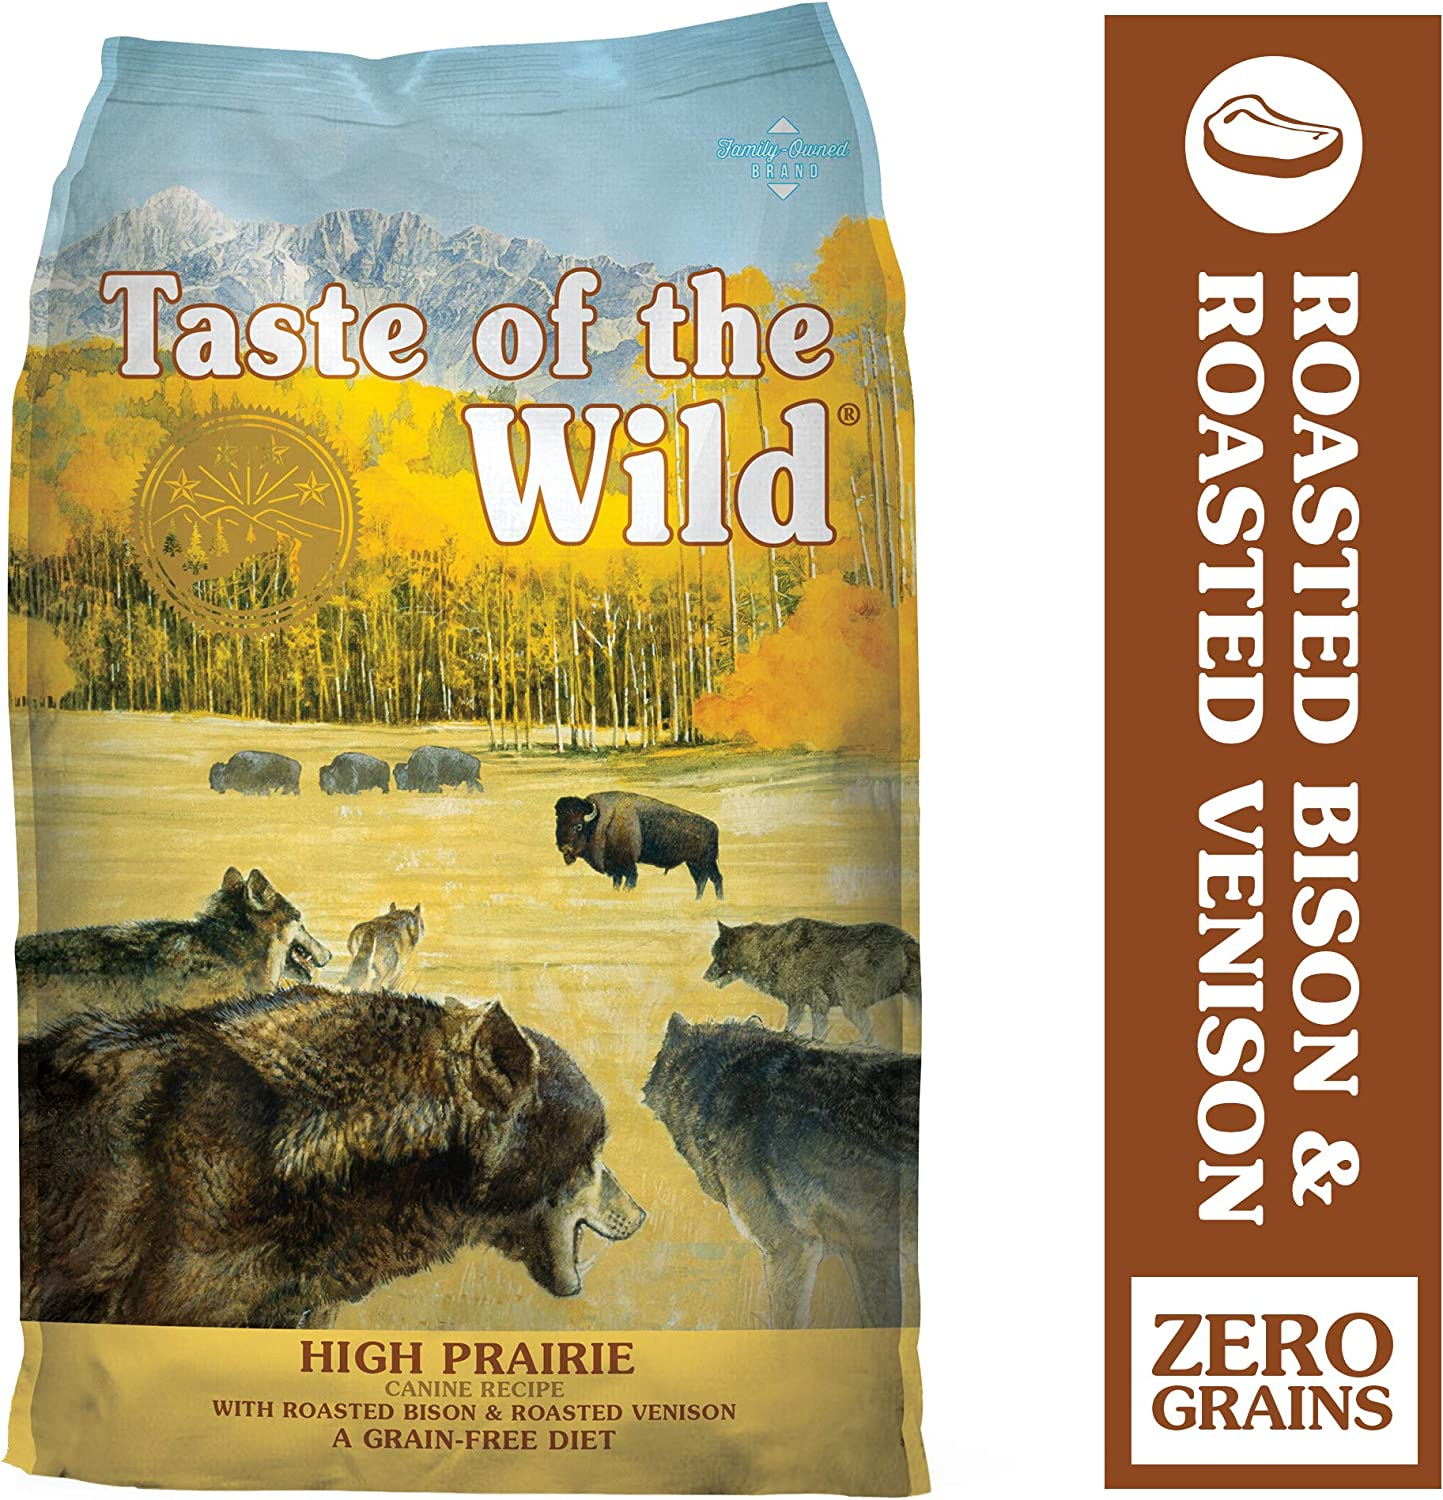 Taste of the Wild High Protein Real Meat Recipe Dry Dog Food with Real Roasted Bison Roasted Venison